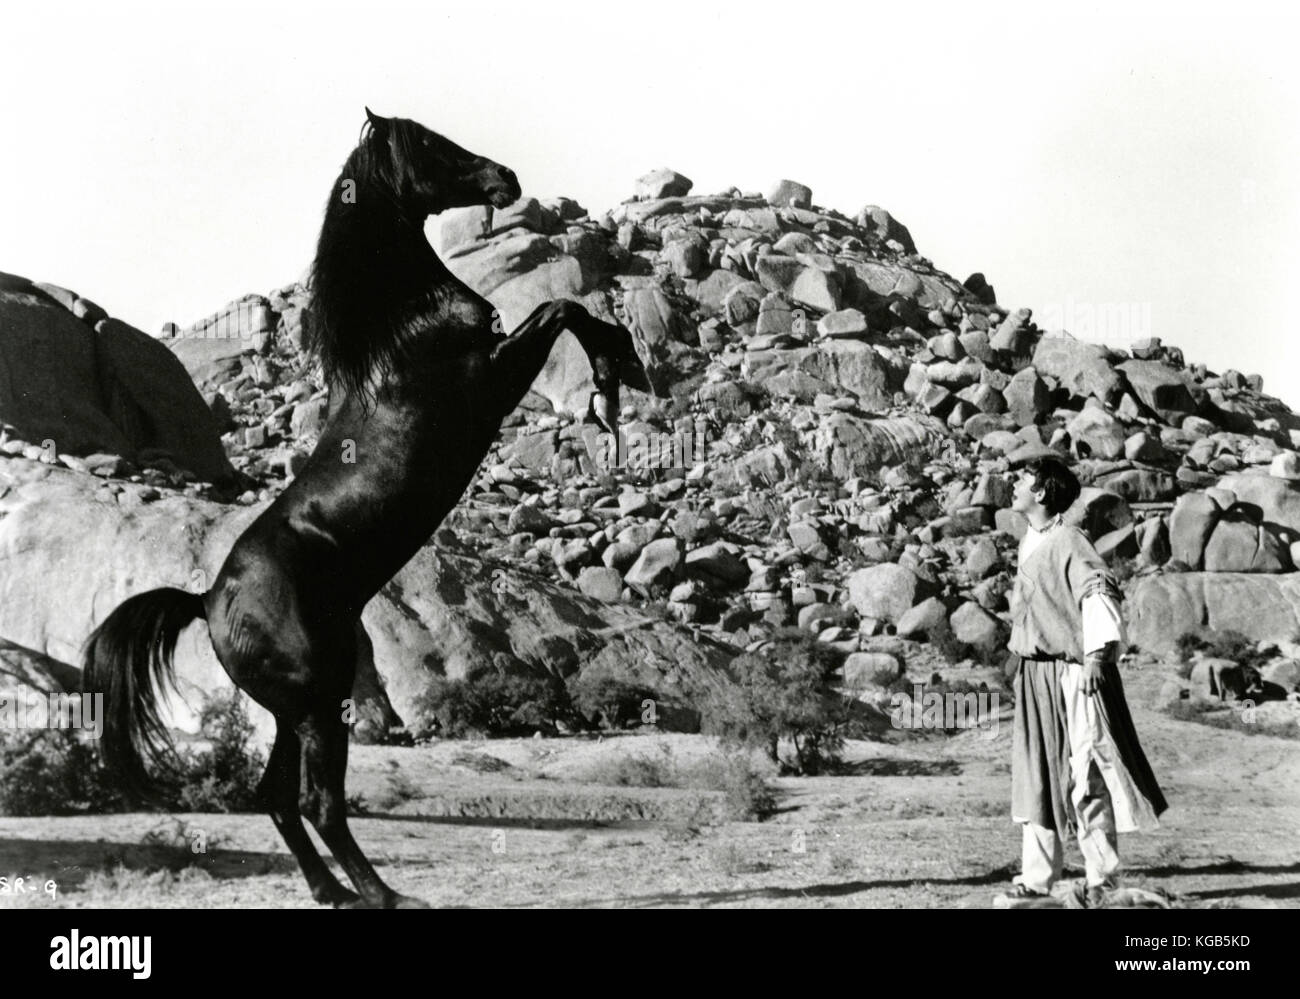 Actor Kelly Reno in the movie The Black Stallion Returns, 1983 - Stock Image